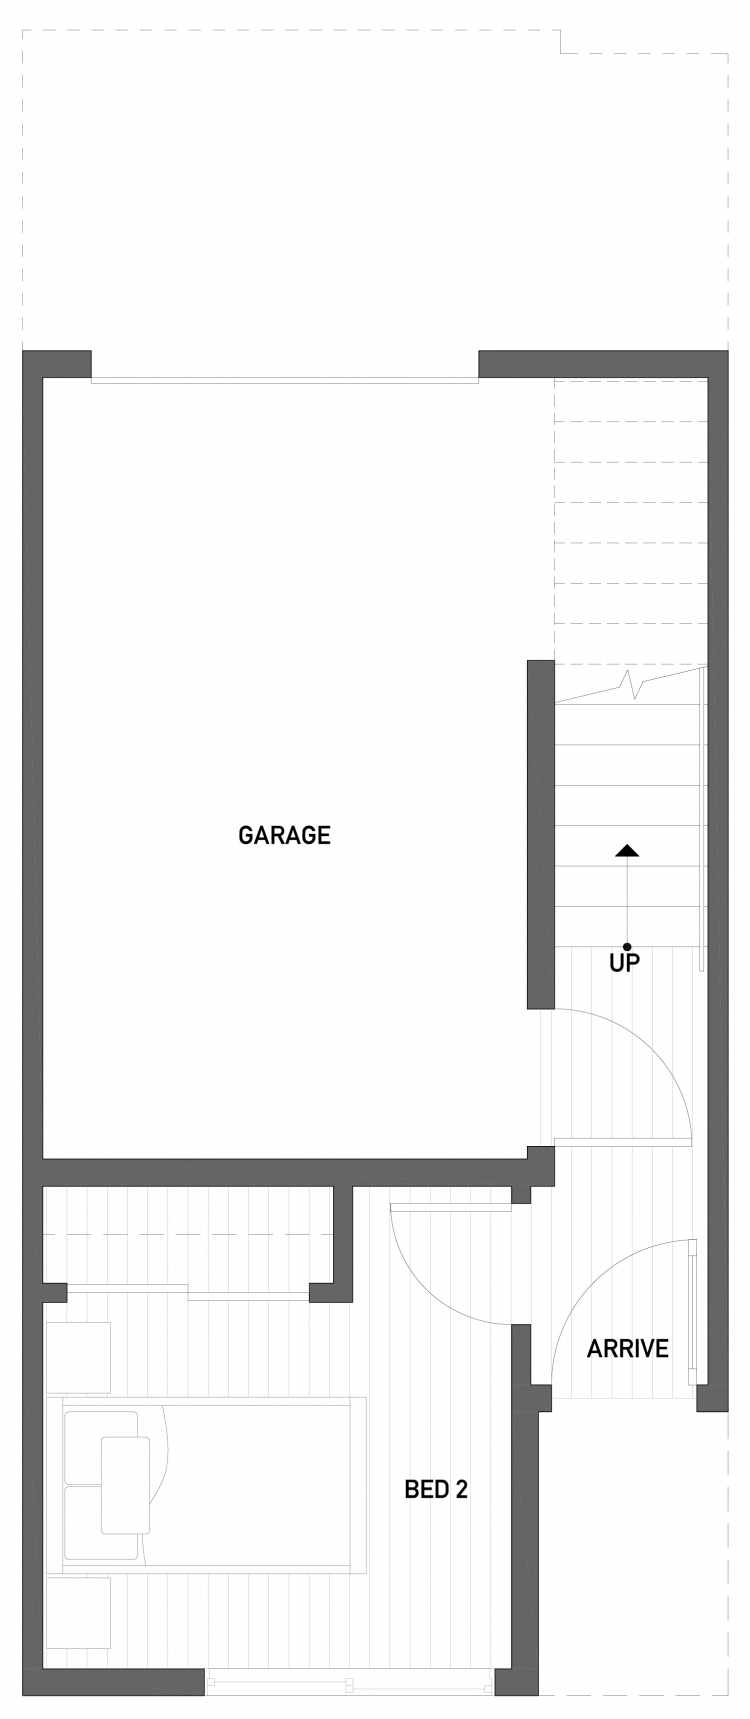 First Floor Plan of 2508 Everett Ave E of the Baymont Townhomes